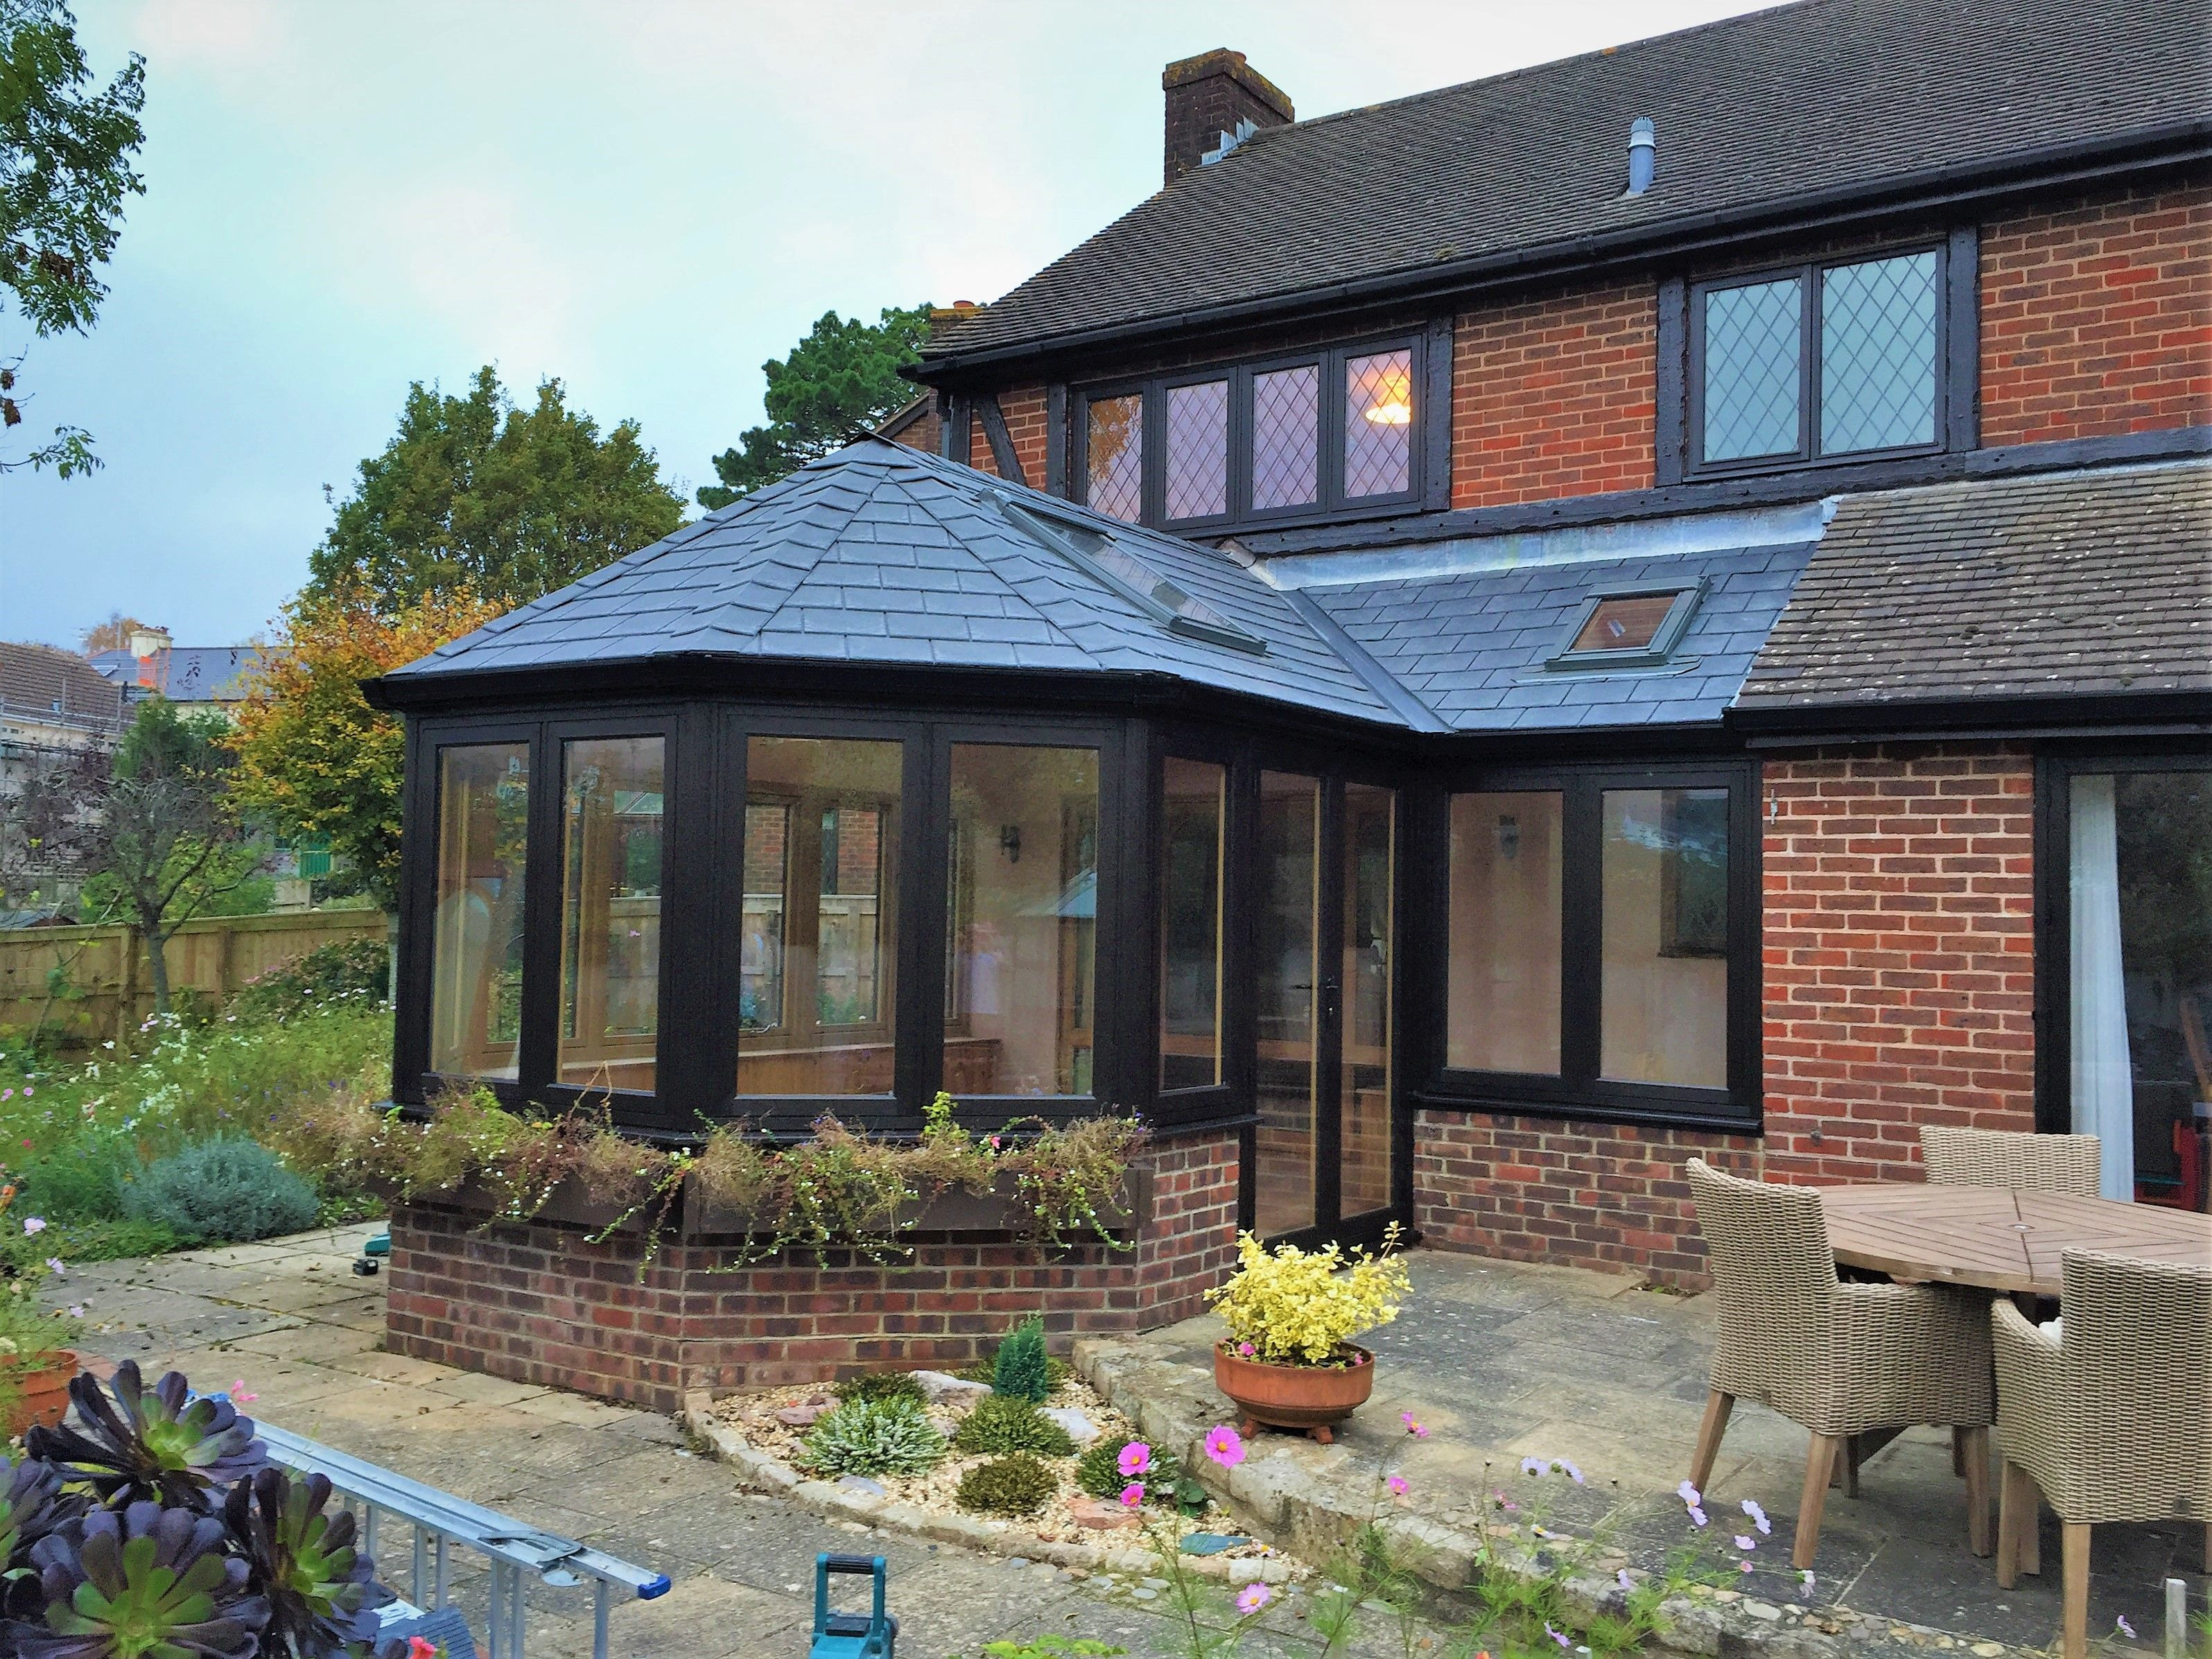 Bespoke Orangeries from | Orangery, Residences, Outdoor ... on Bespoke Outdoor Living id=14214